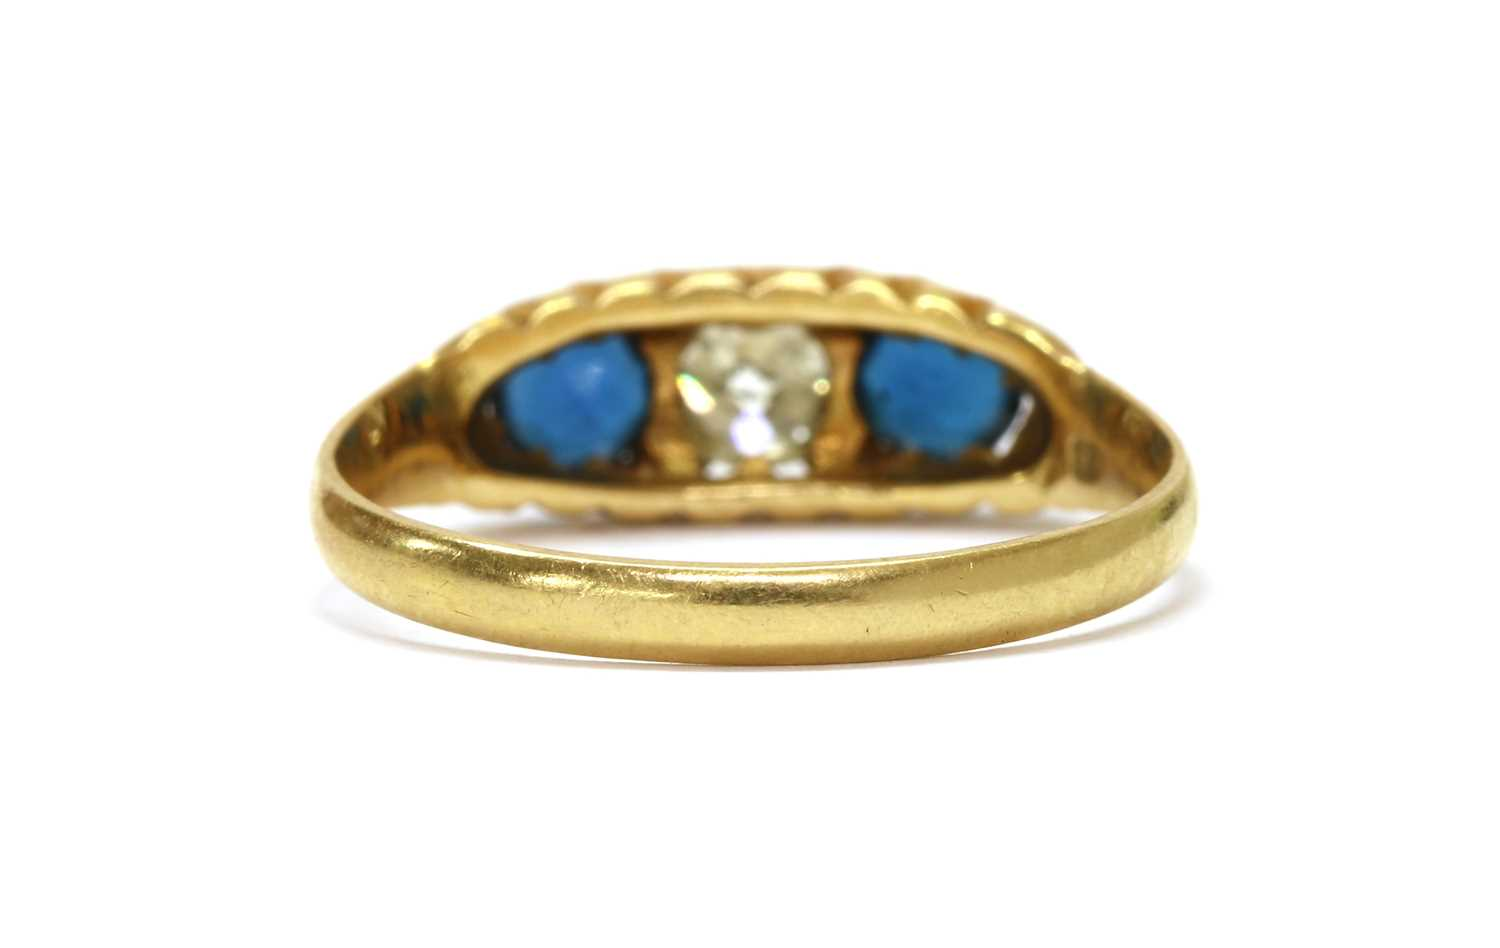 An Edwardian gold diamond and sapphire three stone ring, - Image 2 of 3